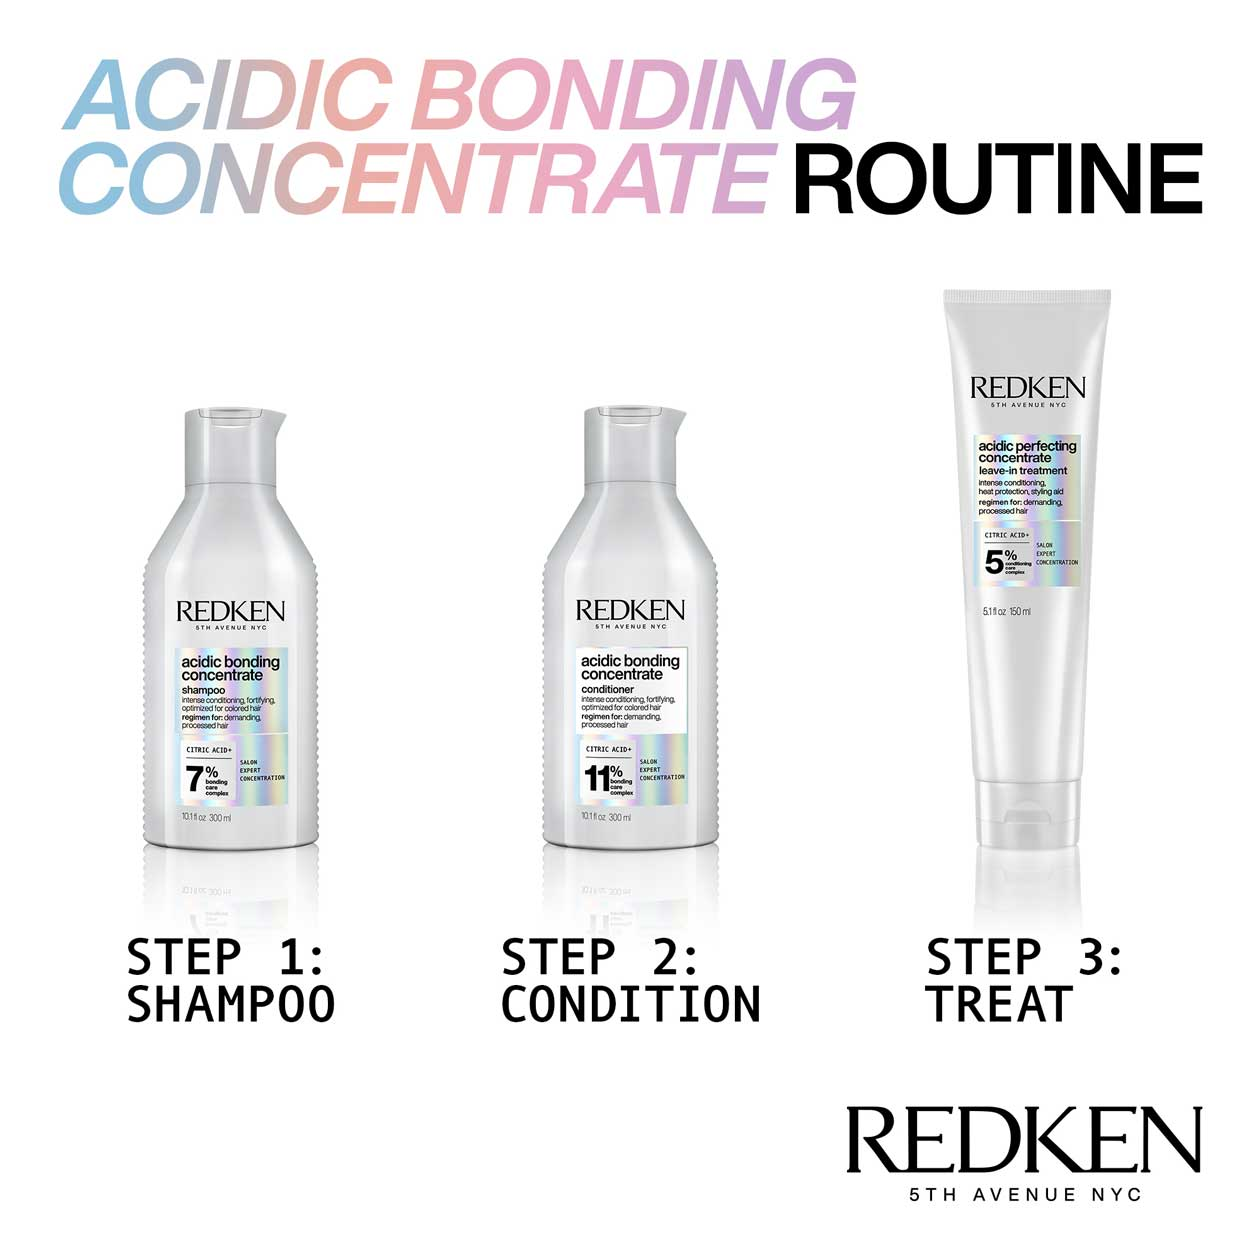 Redken-2020-Acidic-Bonding-Concentrate-Regimen-Retail